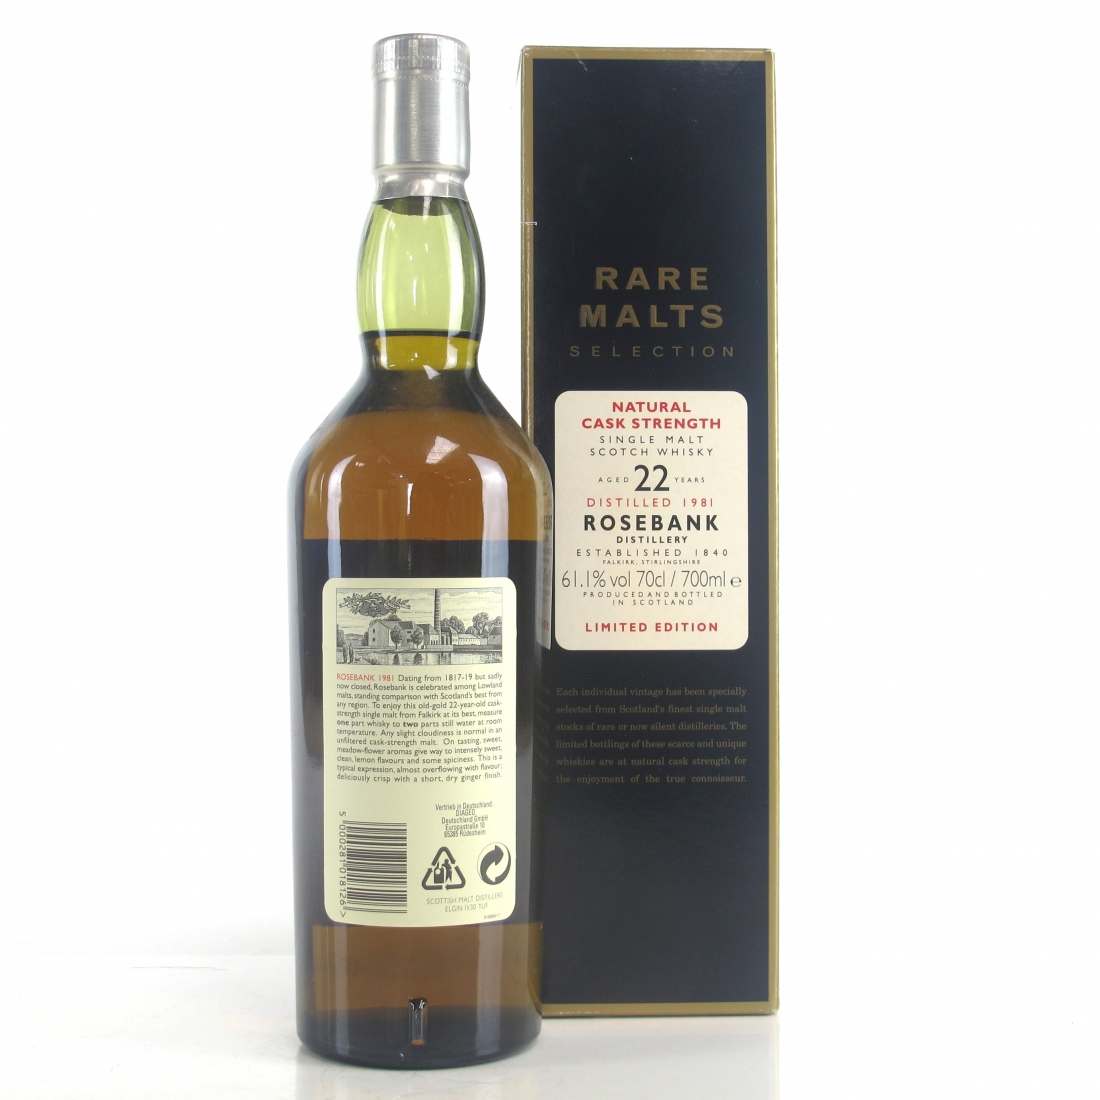 Rosebank 1981 Rare Malt 22 Year Old / 61.1%